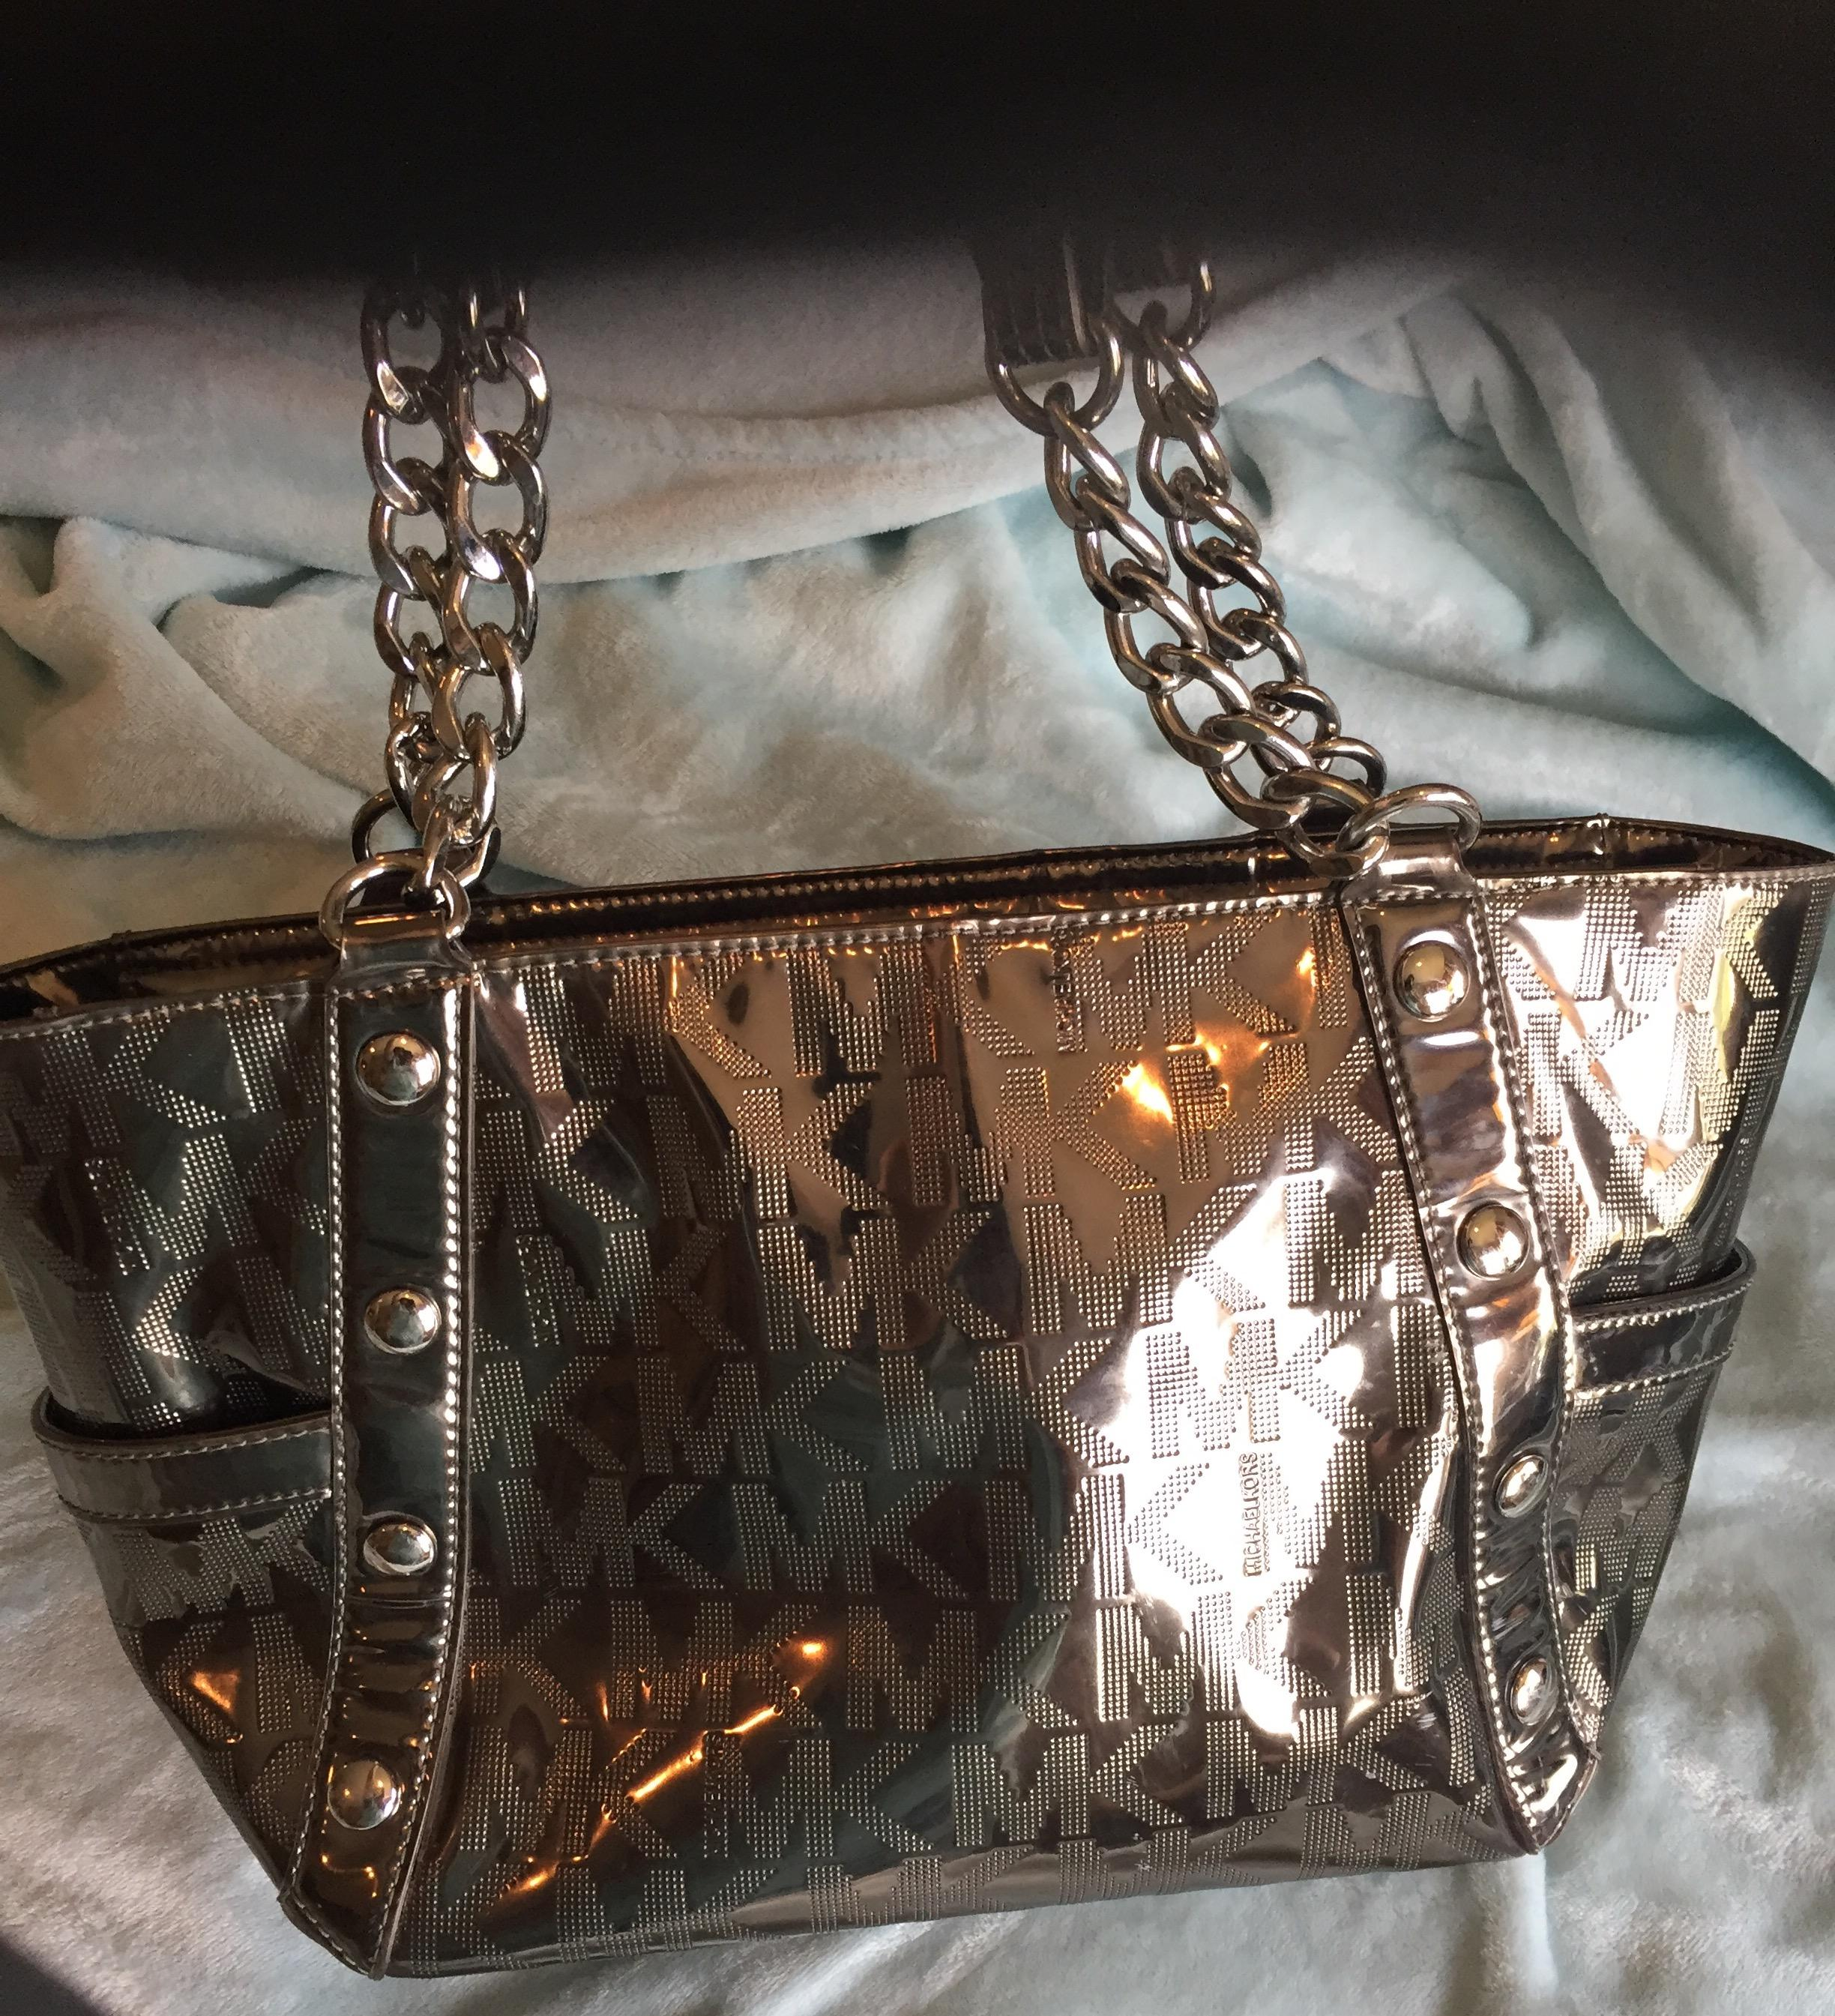 ef9ce1f12b76 ... large michael kors nickel tote 85474 86dc5; france promo code michael  kors mk monogram logo mirror metallic delancy metallic mk and wallet mk